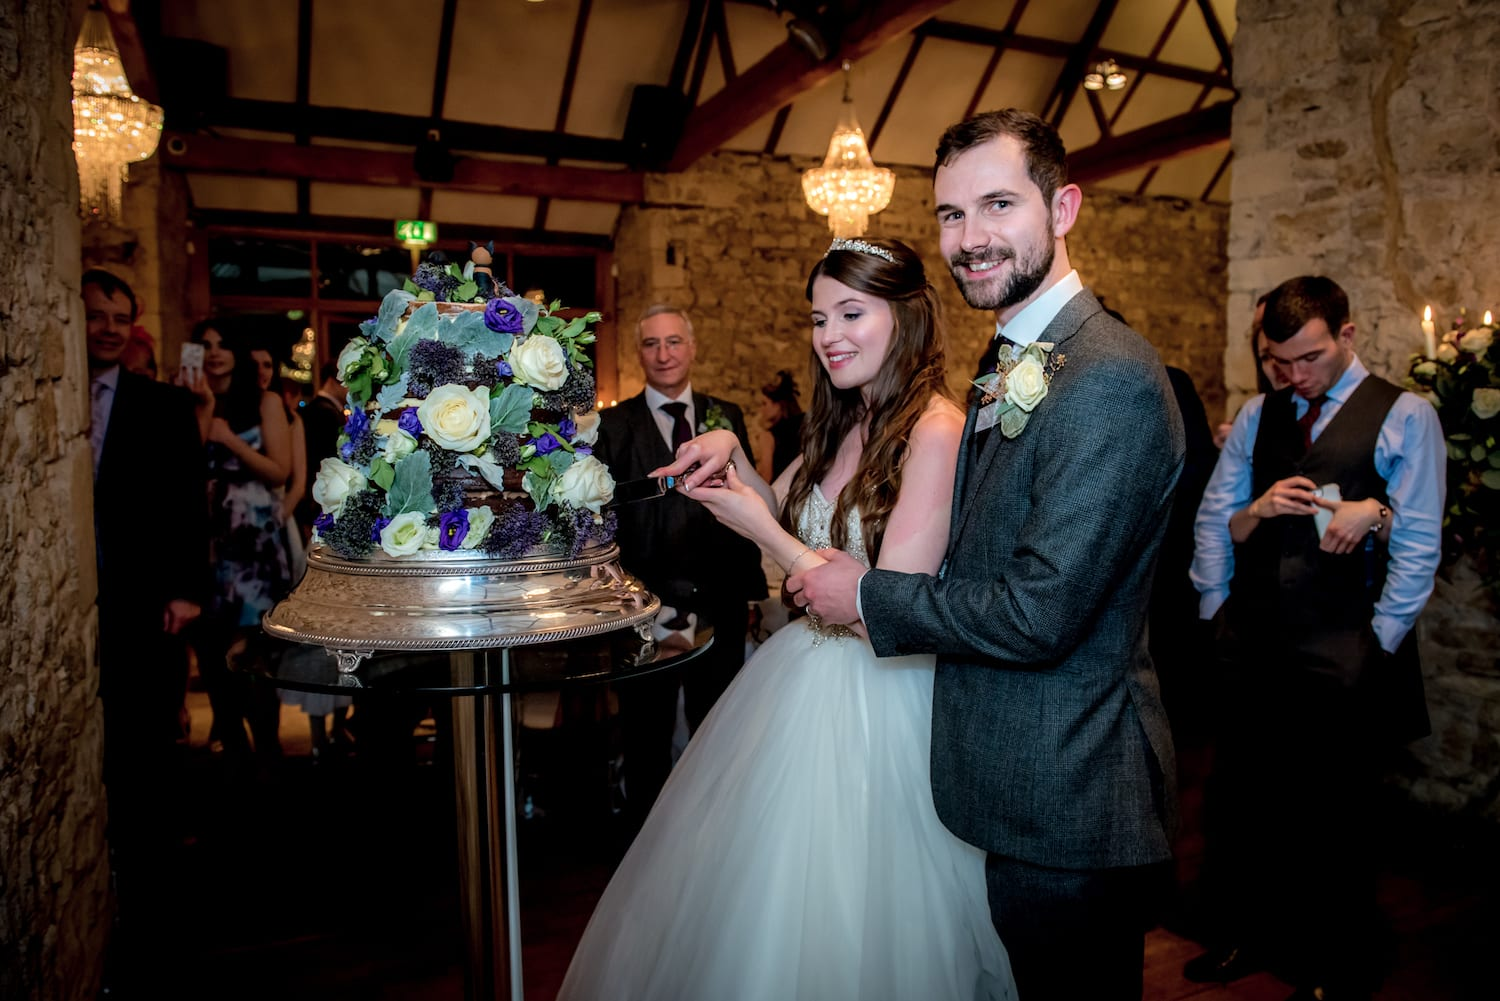 Notley Abbey tiered floral wedding cake cutting